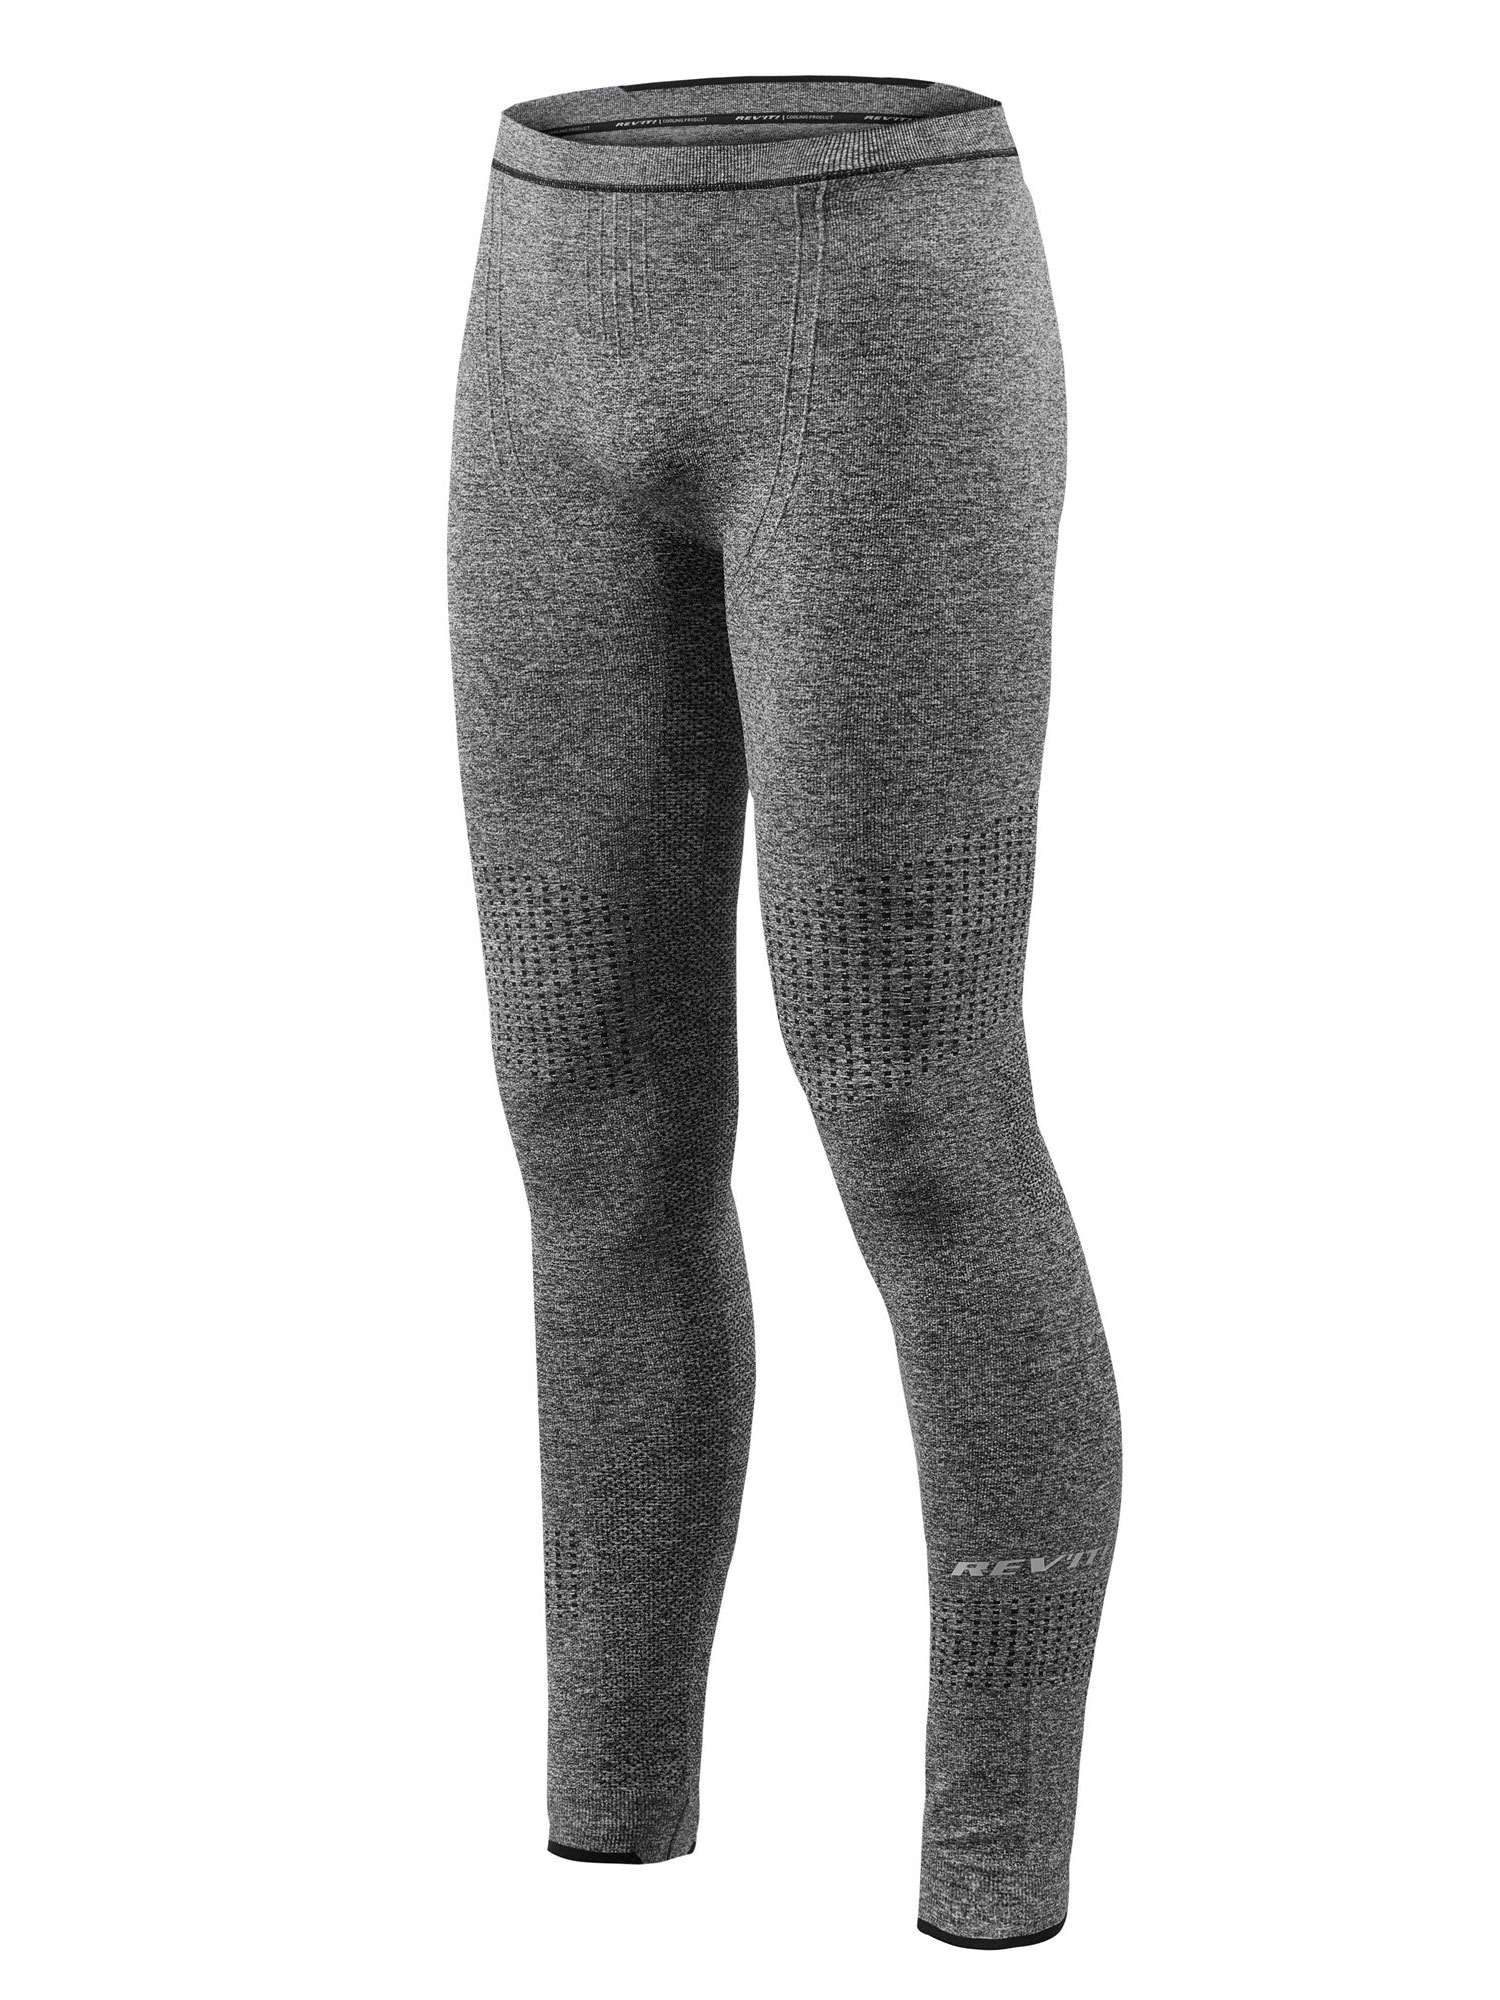 REV'IT! Airborne LL Motorcycle Base Layer Leggings